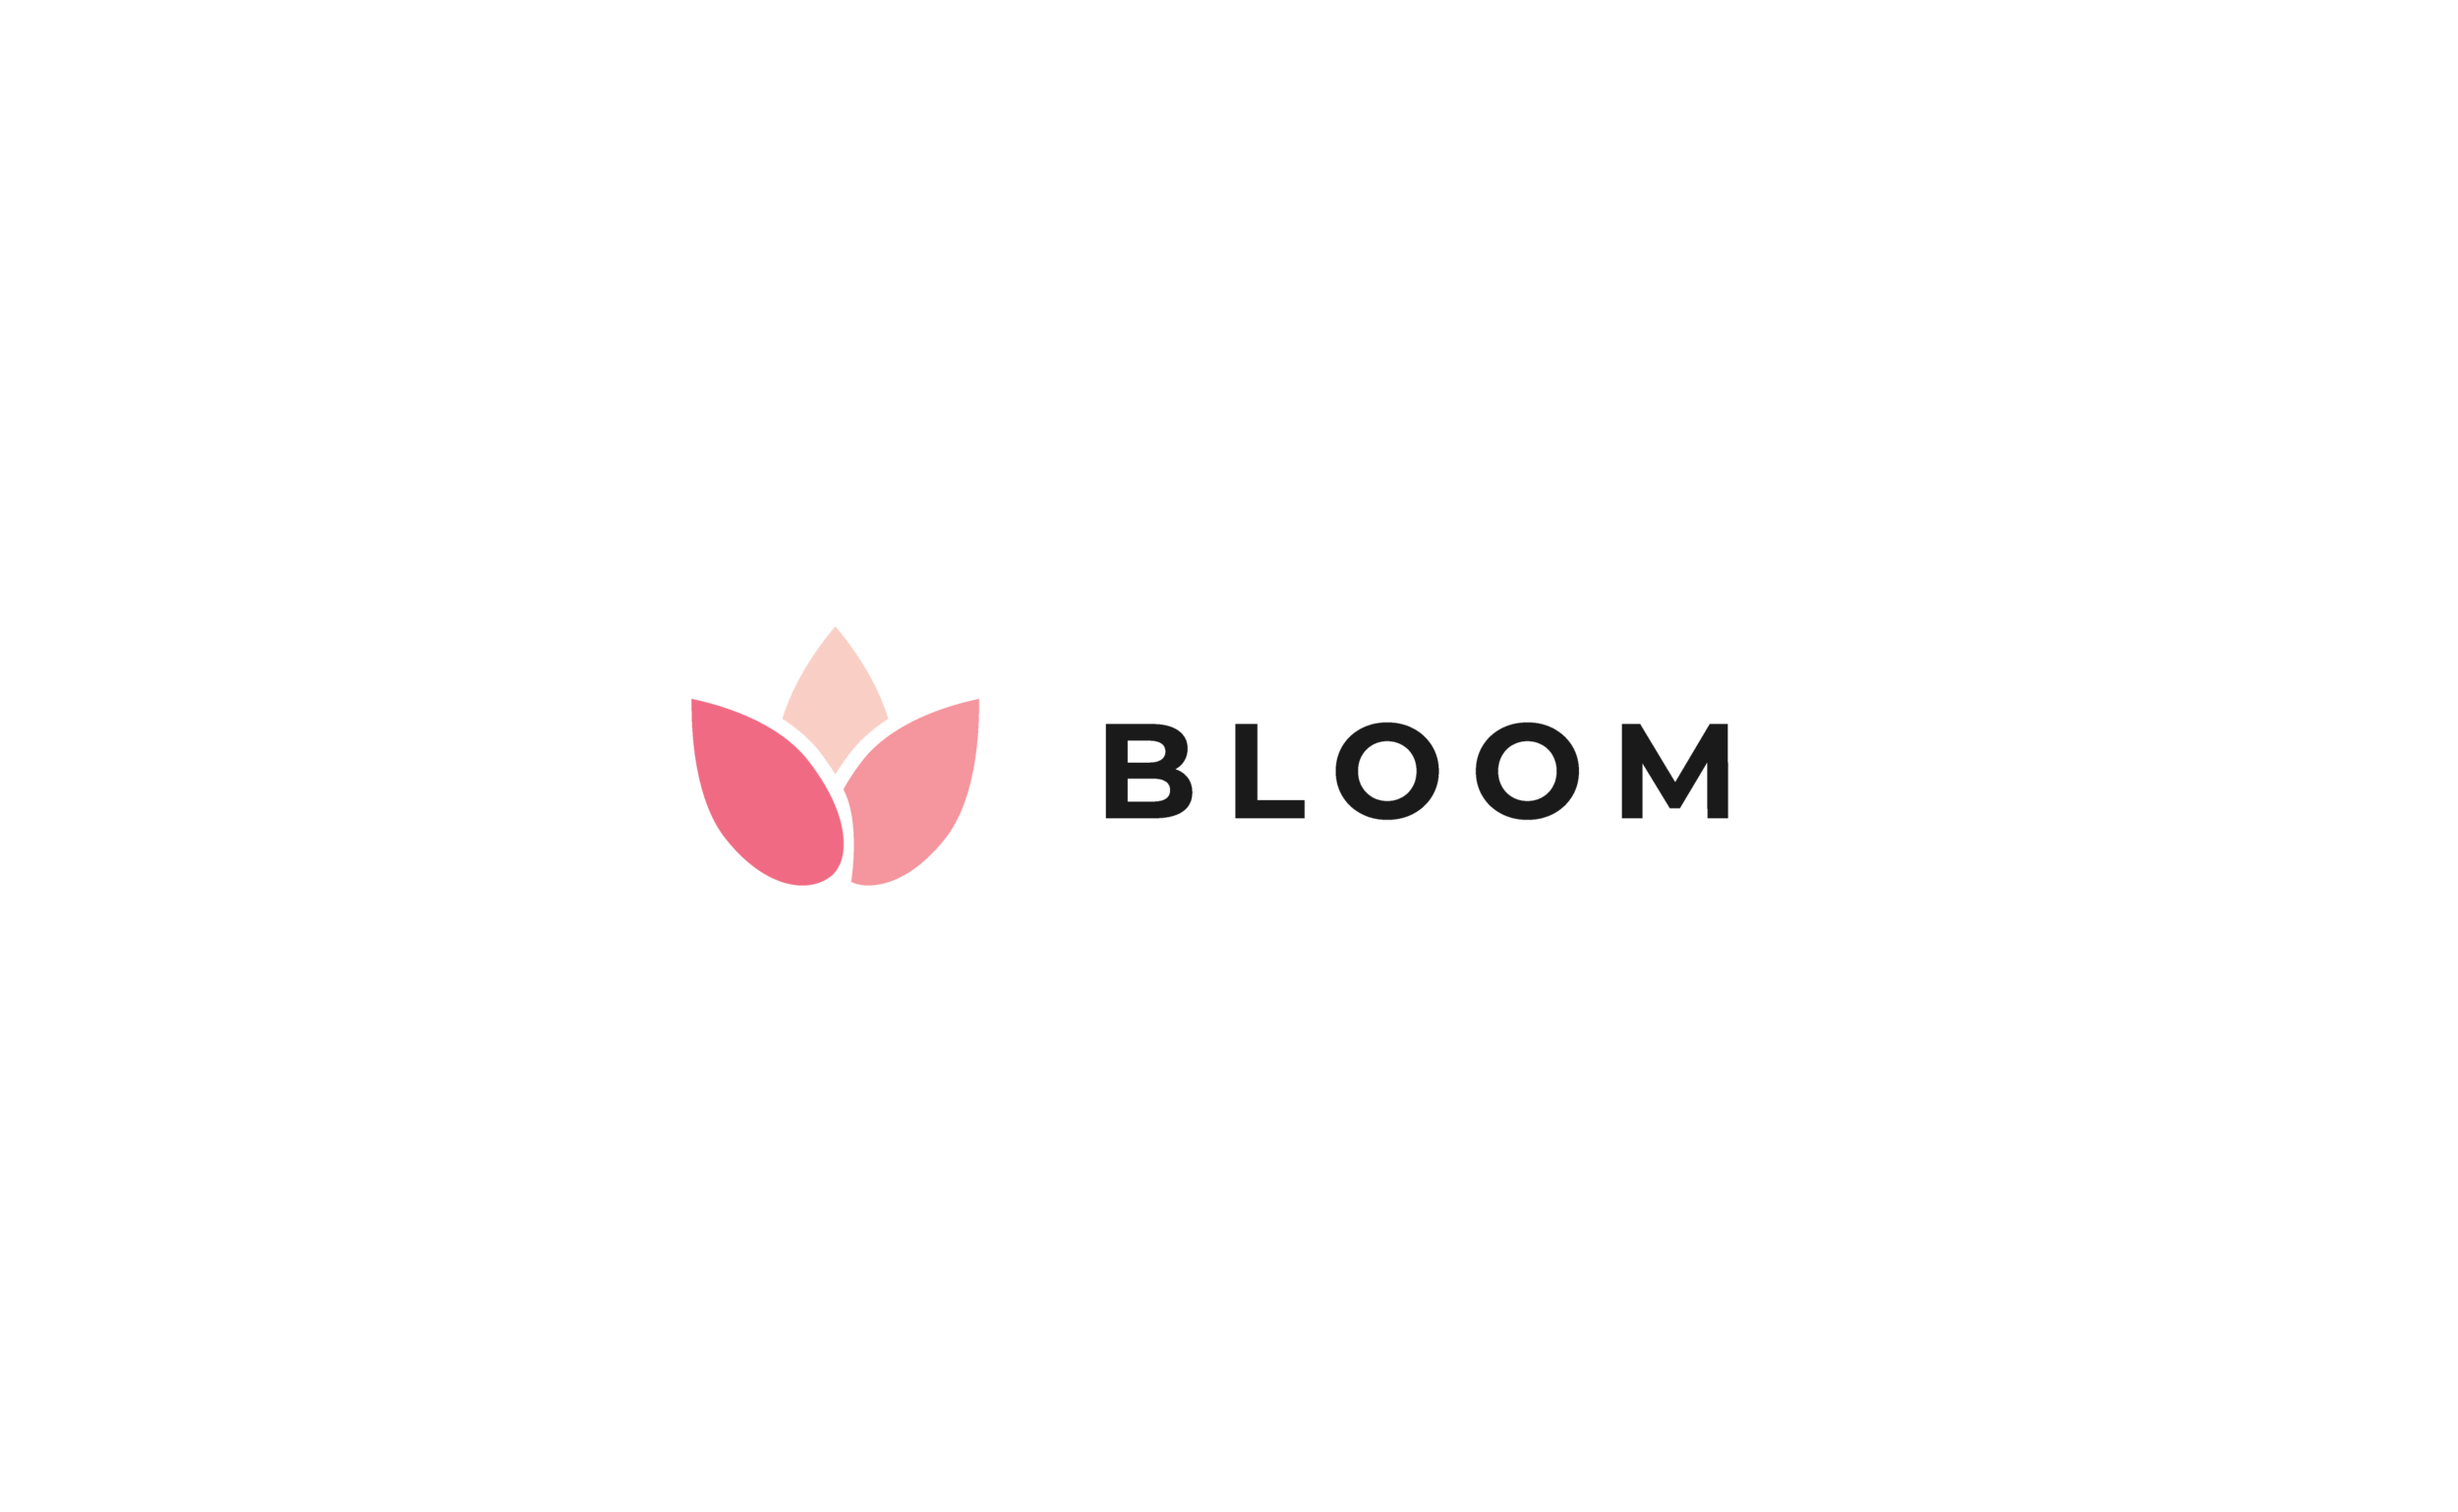 BloomFoundation_Basic_Horizontal.png